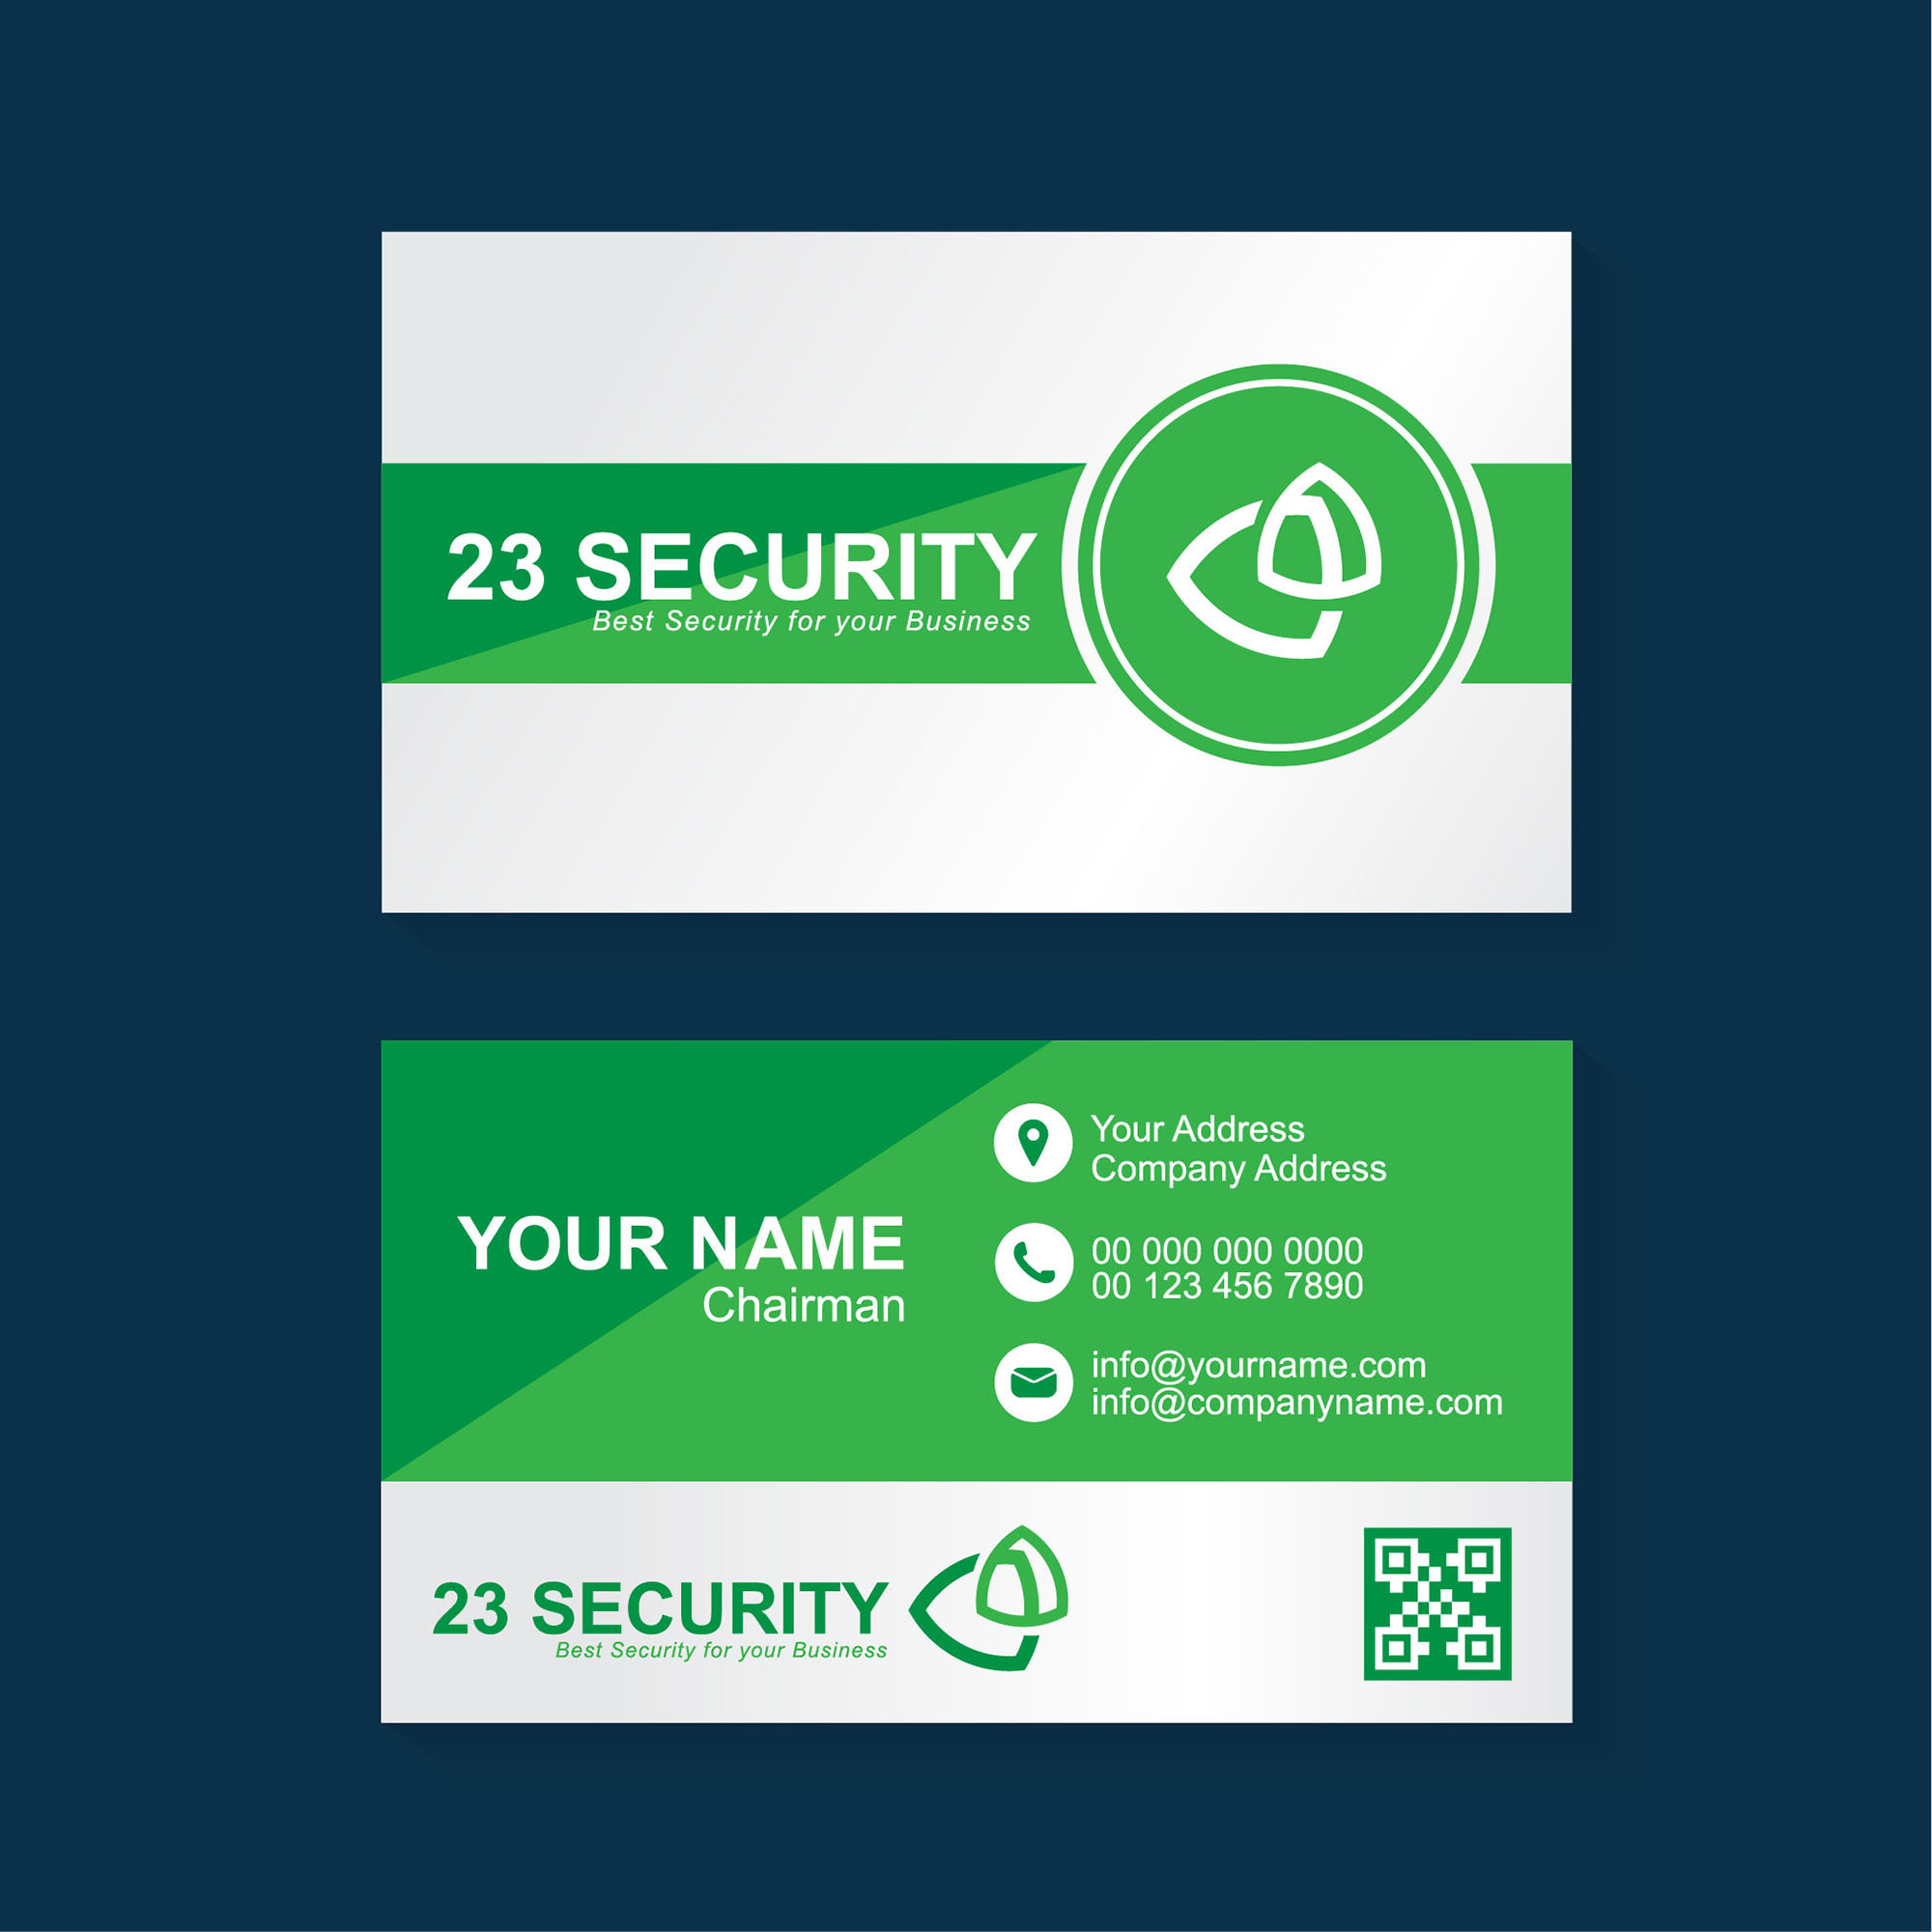 Security business card template free download wisxi business card business cards business card design business card template design templates wajeb Choice Image